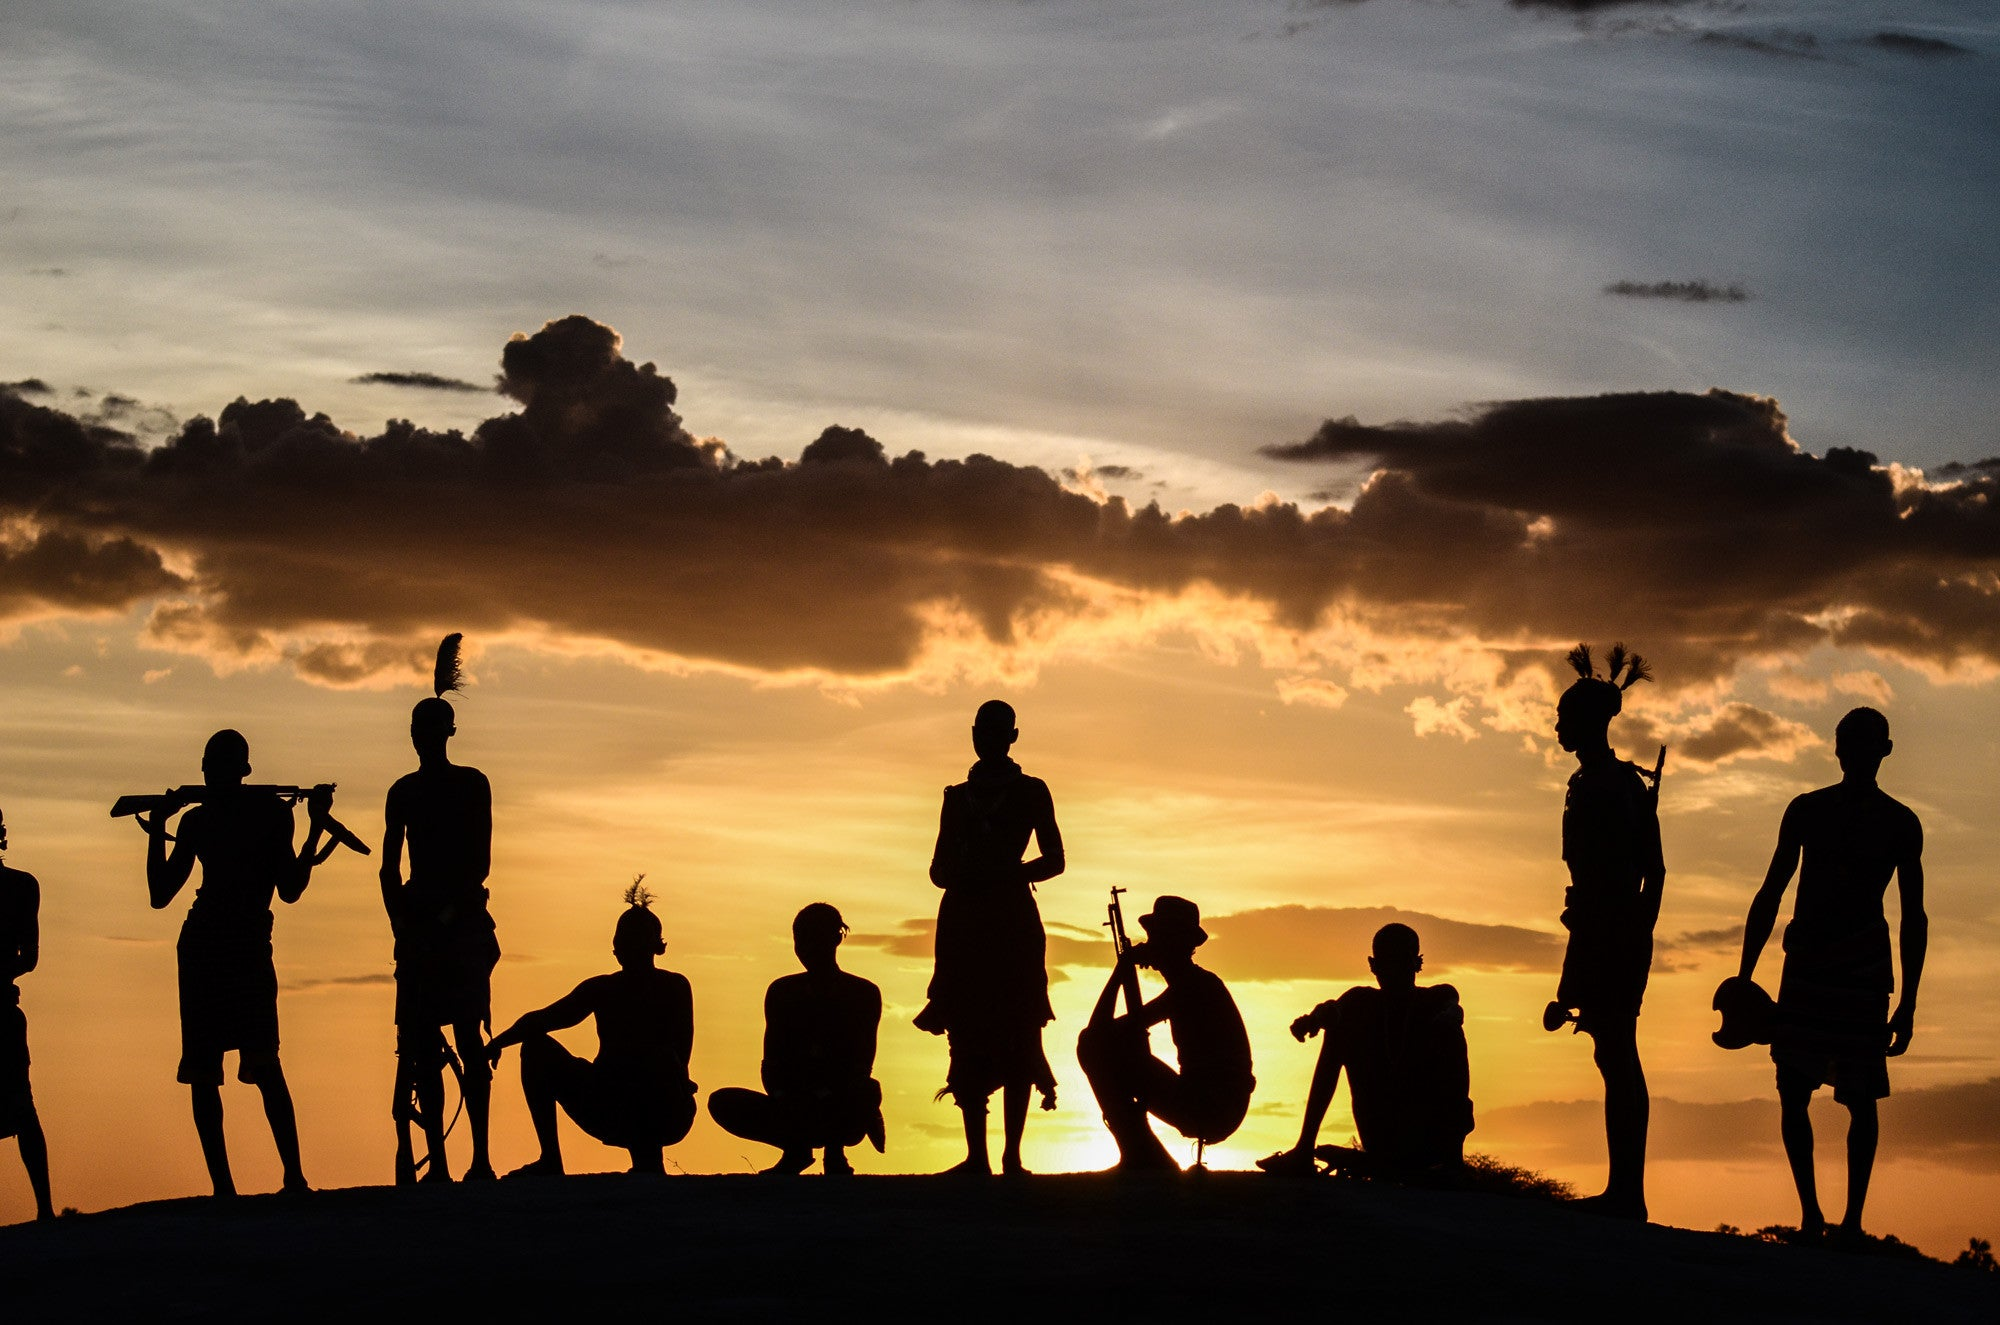 Duss Village Sunset - Omo Valley - Kara Tribe